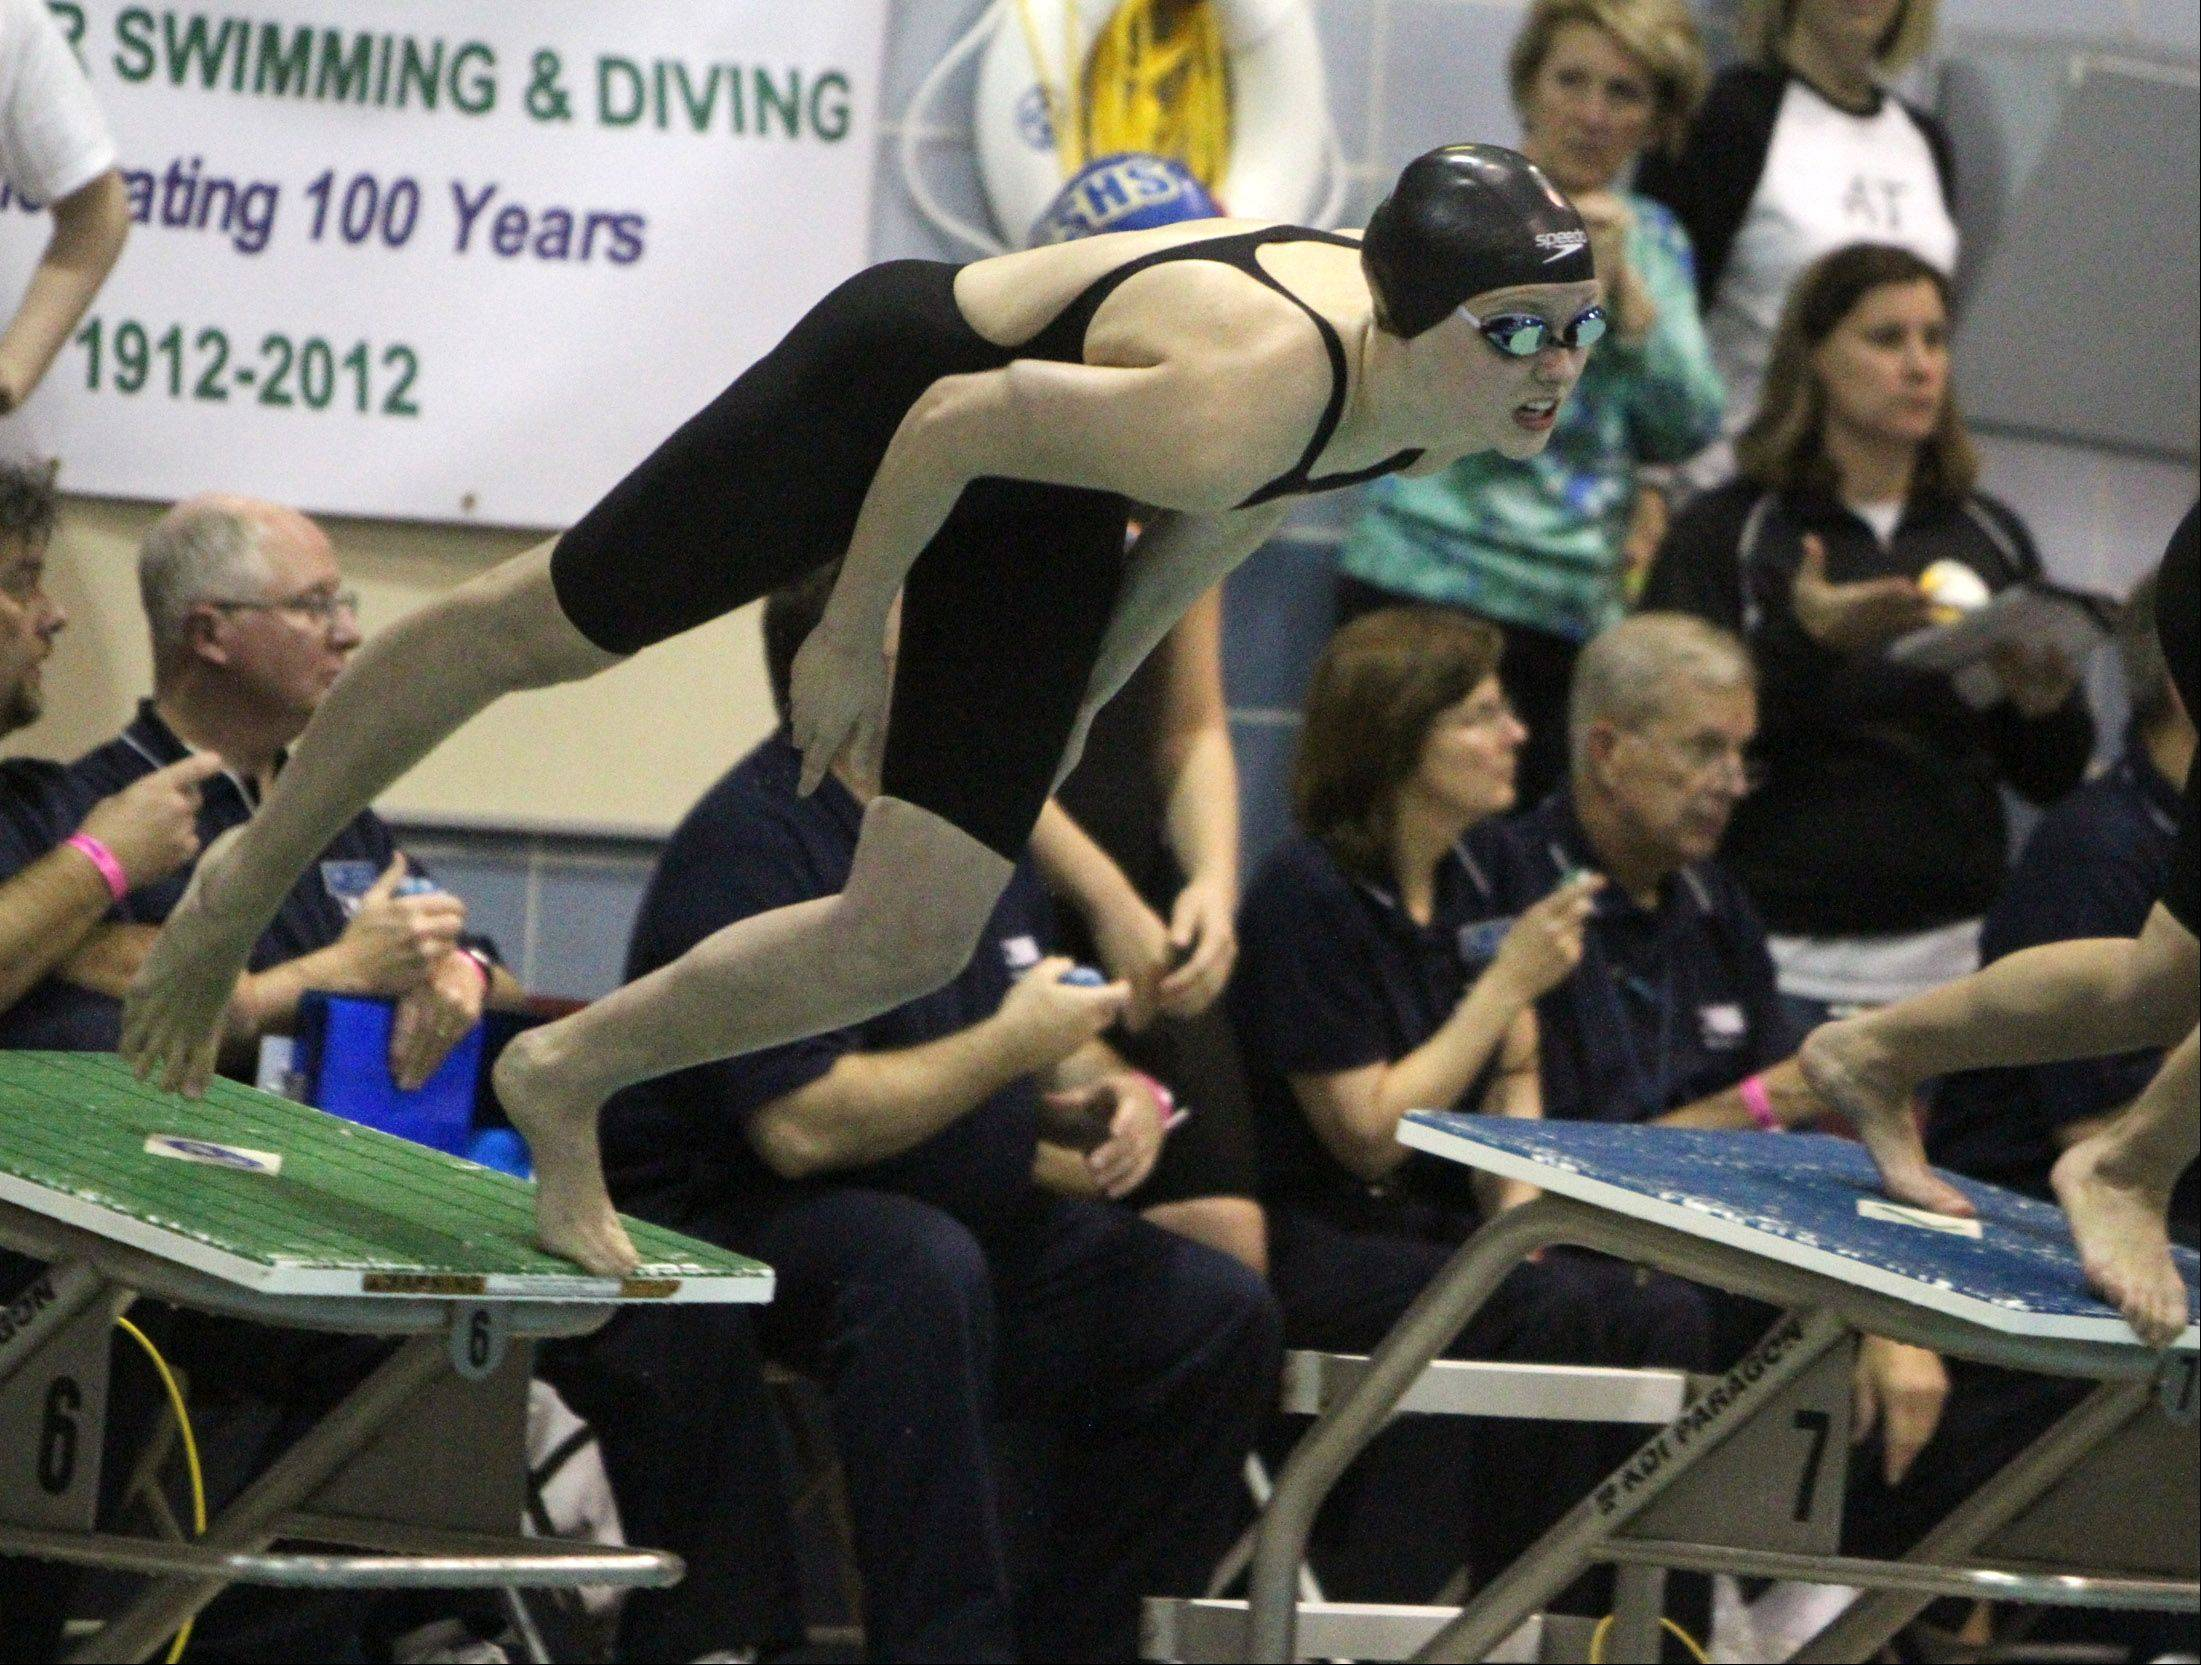 Buffalo Grove's Veronika Jedryka finished the 100-yard freestyle in 52.76 at the state meet preliminaries in Winnetka on Friday.